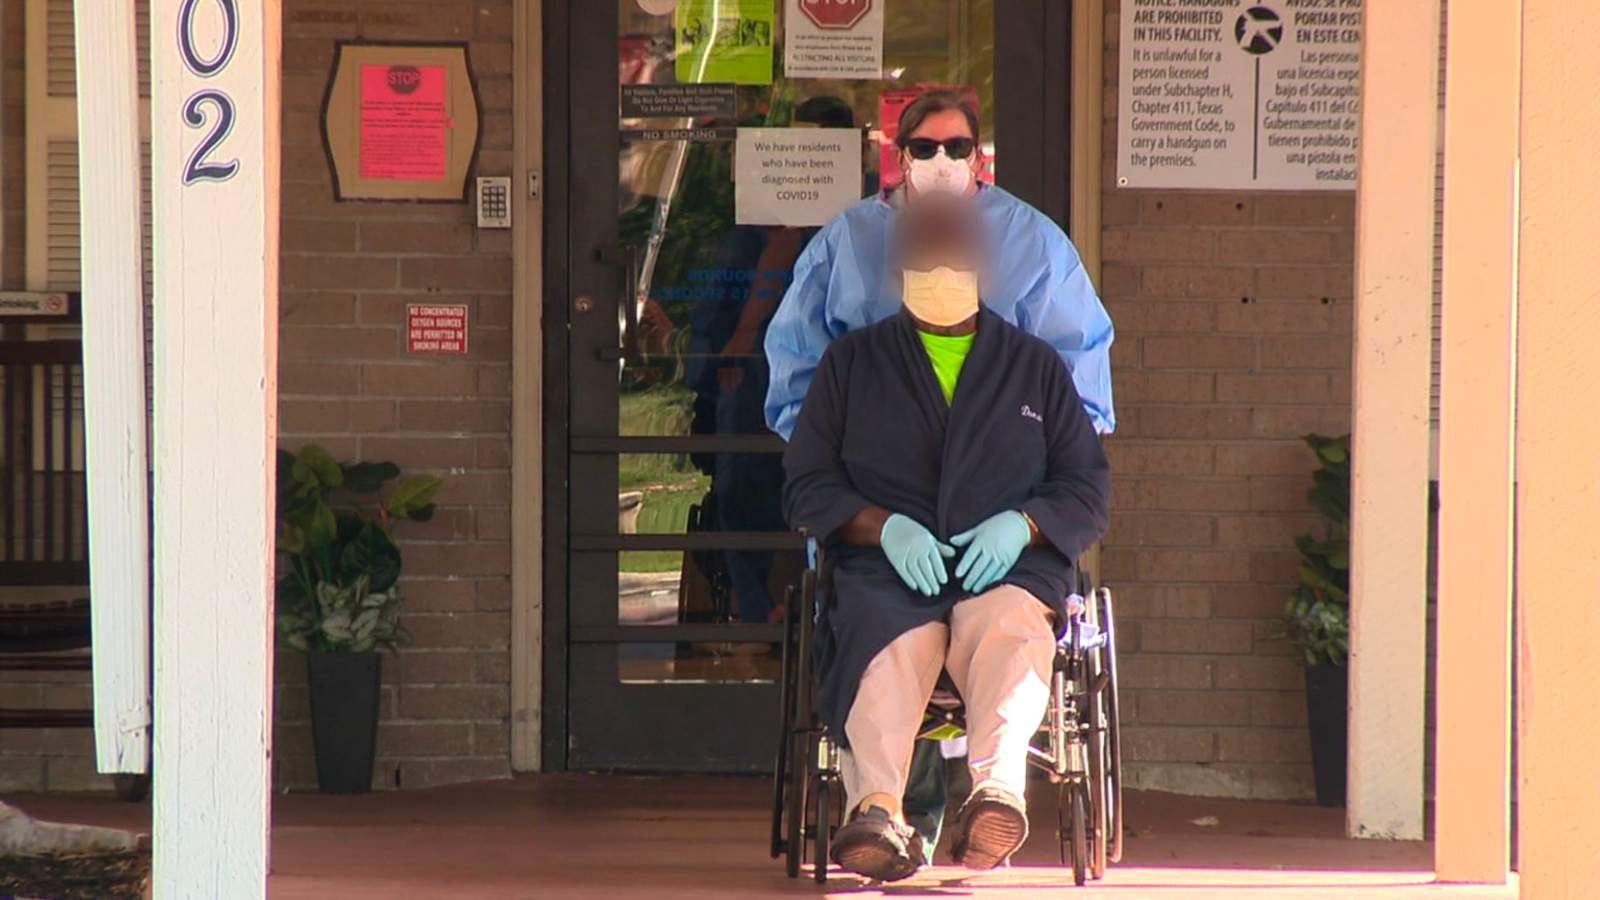 Infected staff at nursing home with 75 COVID-19 patients worked at other San Antonio facilities - KSAT San Antonio